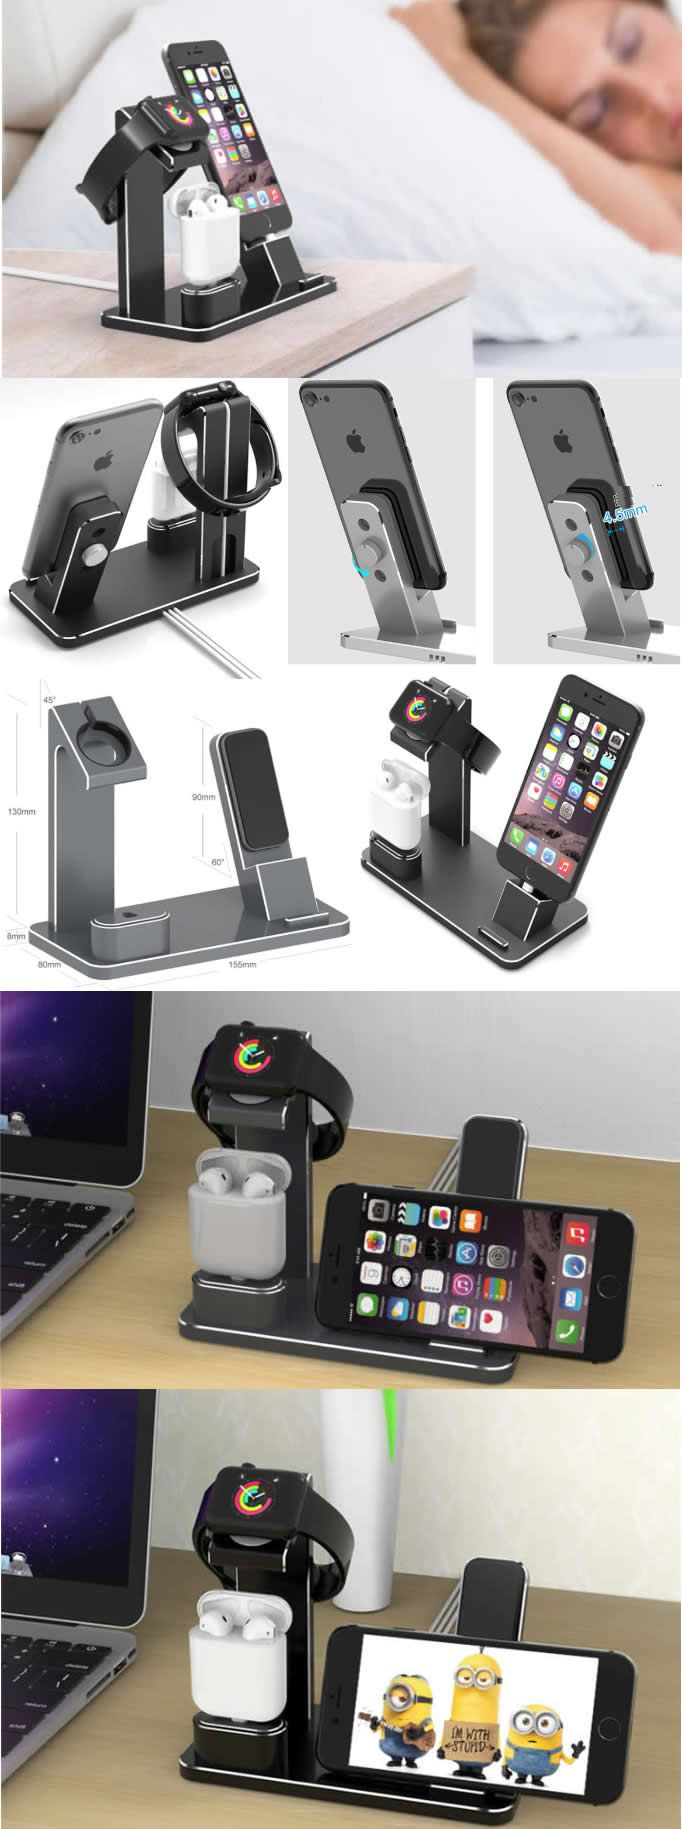 Aluminum Alloy Metal Apple Watch Charging Stand AirPods Stand Charging Docks Holder iPhone Charging Stand Docks for Apple Watch Series 3/2/1/ AirPods/ iPhone X/8/8Plus/7/7 Plus /6S /6S Plus/ iPad